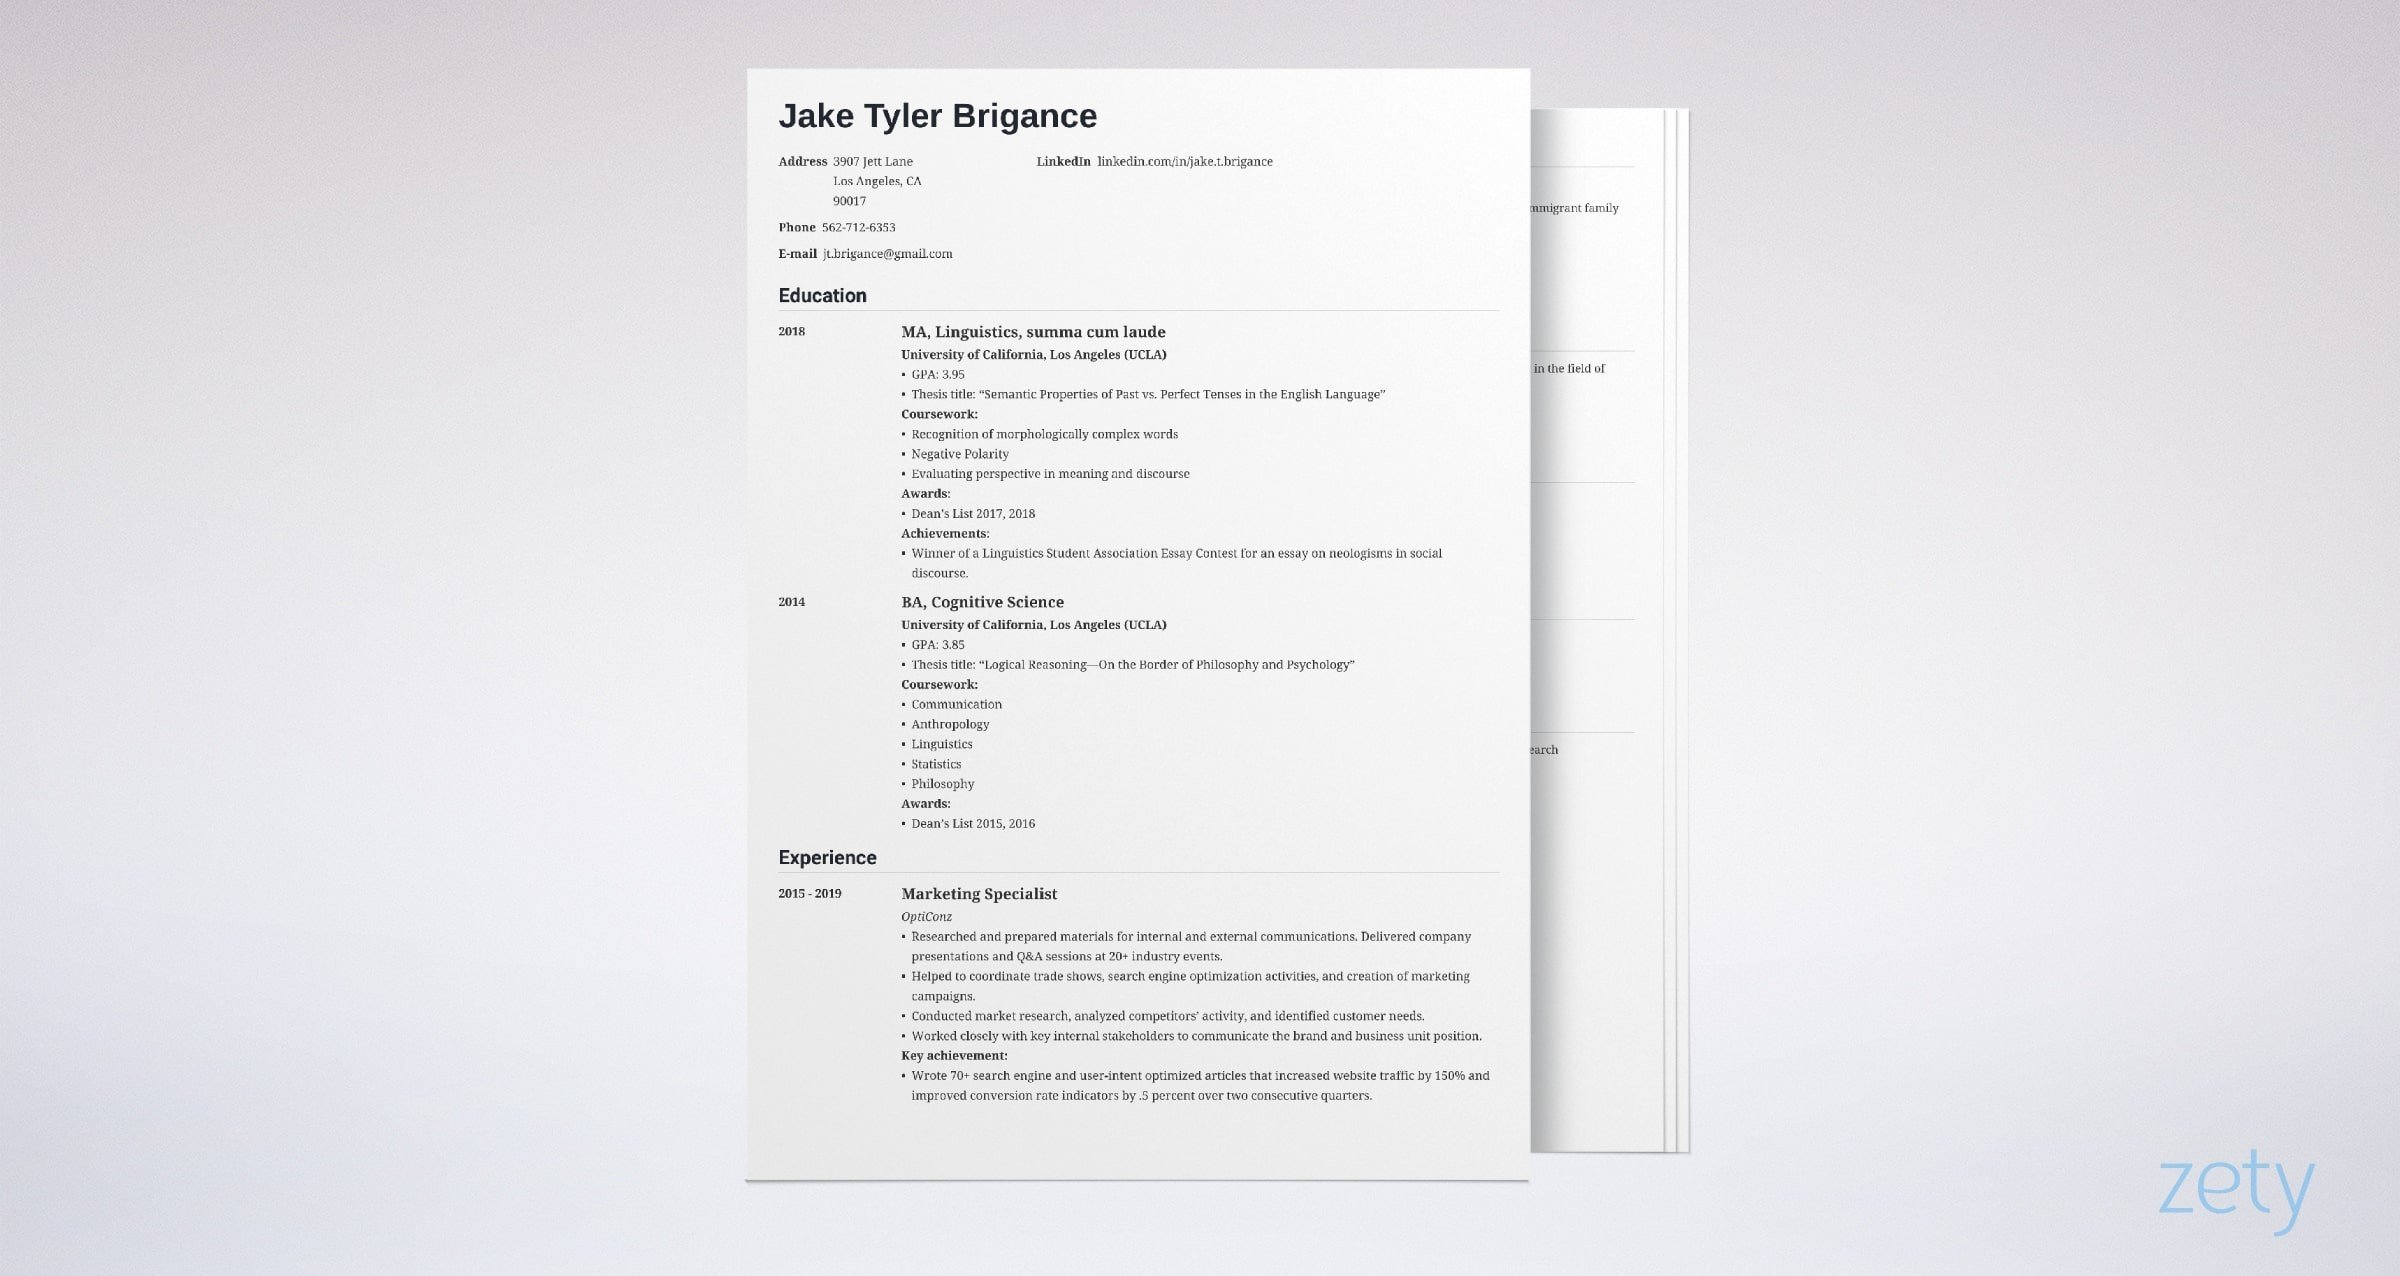 law school application resume template examples harvard example chef and profile pizza Resume Harvard Law School Application Resume